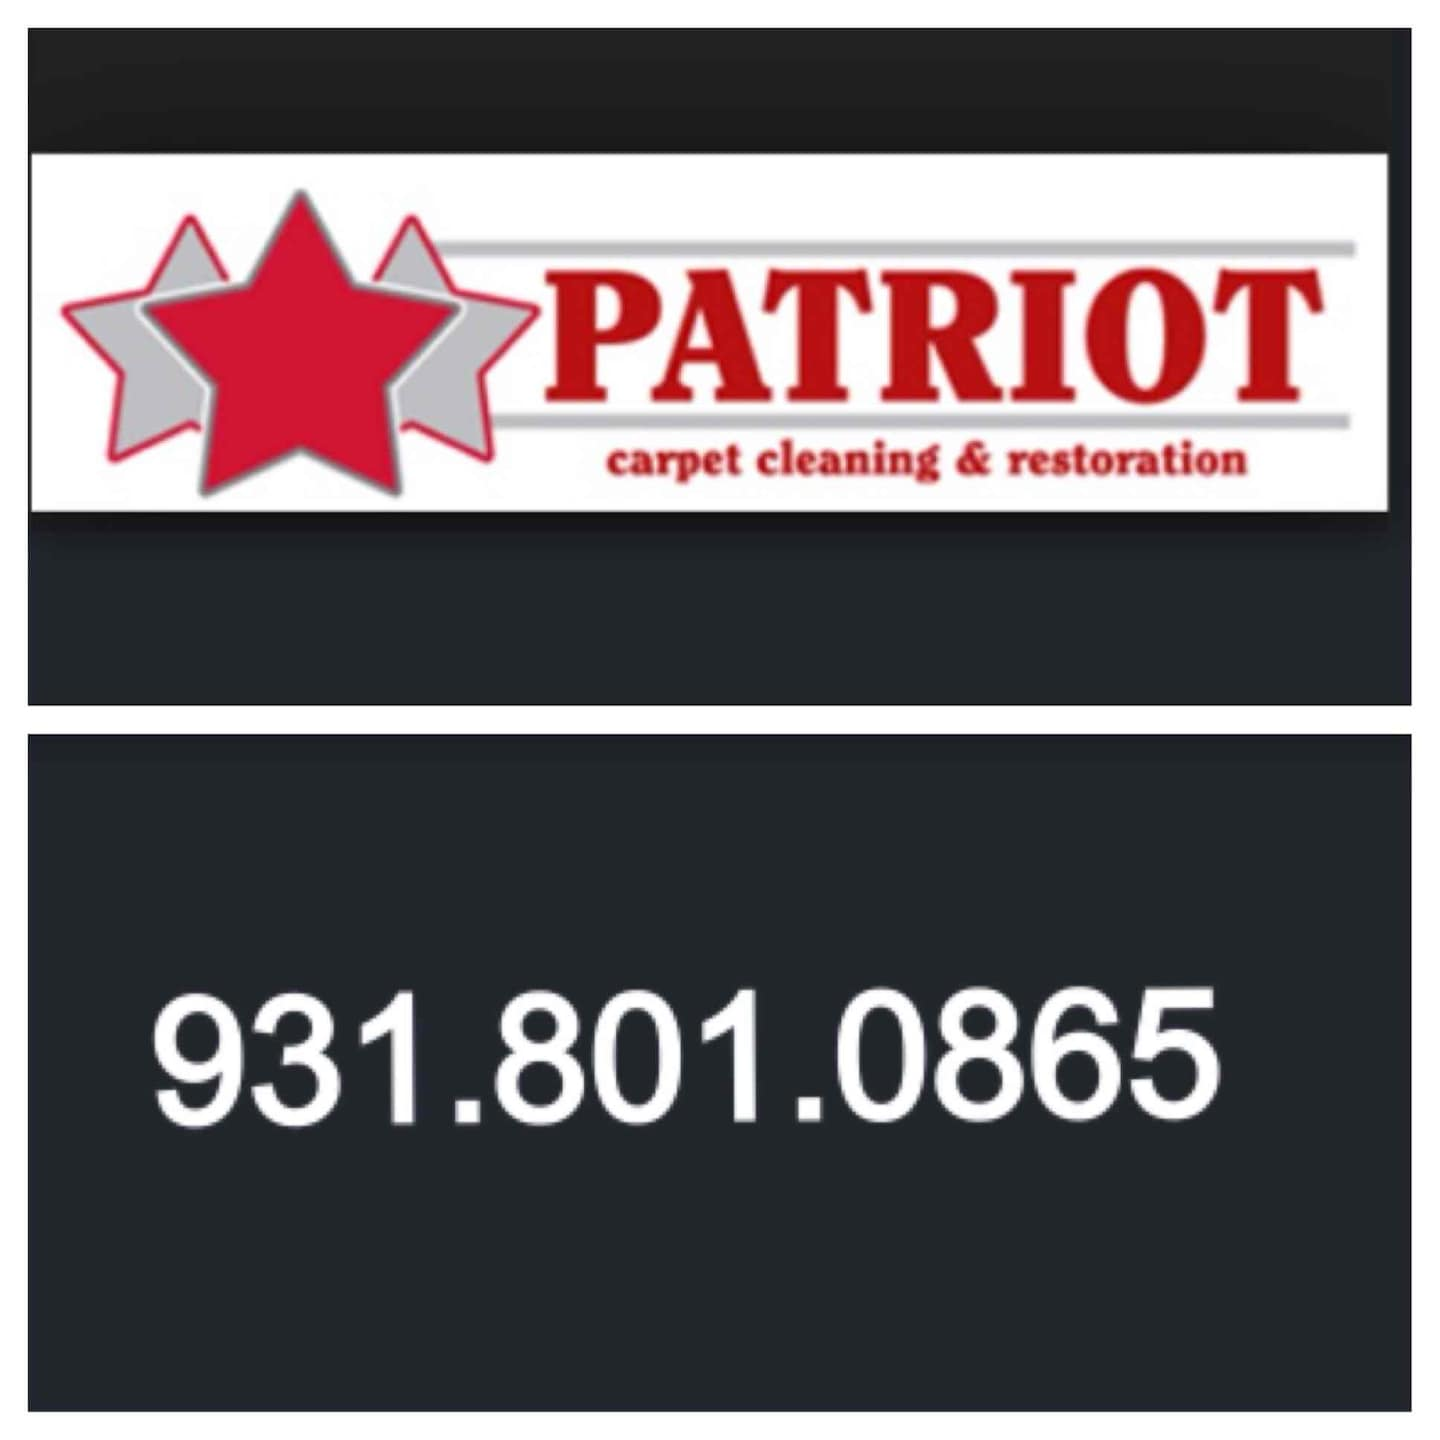 Patriot Carpet Cleaning and Restoration